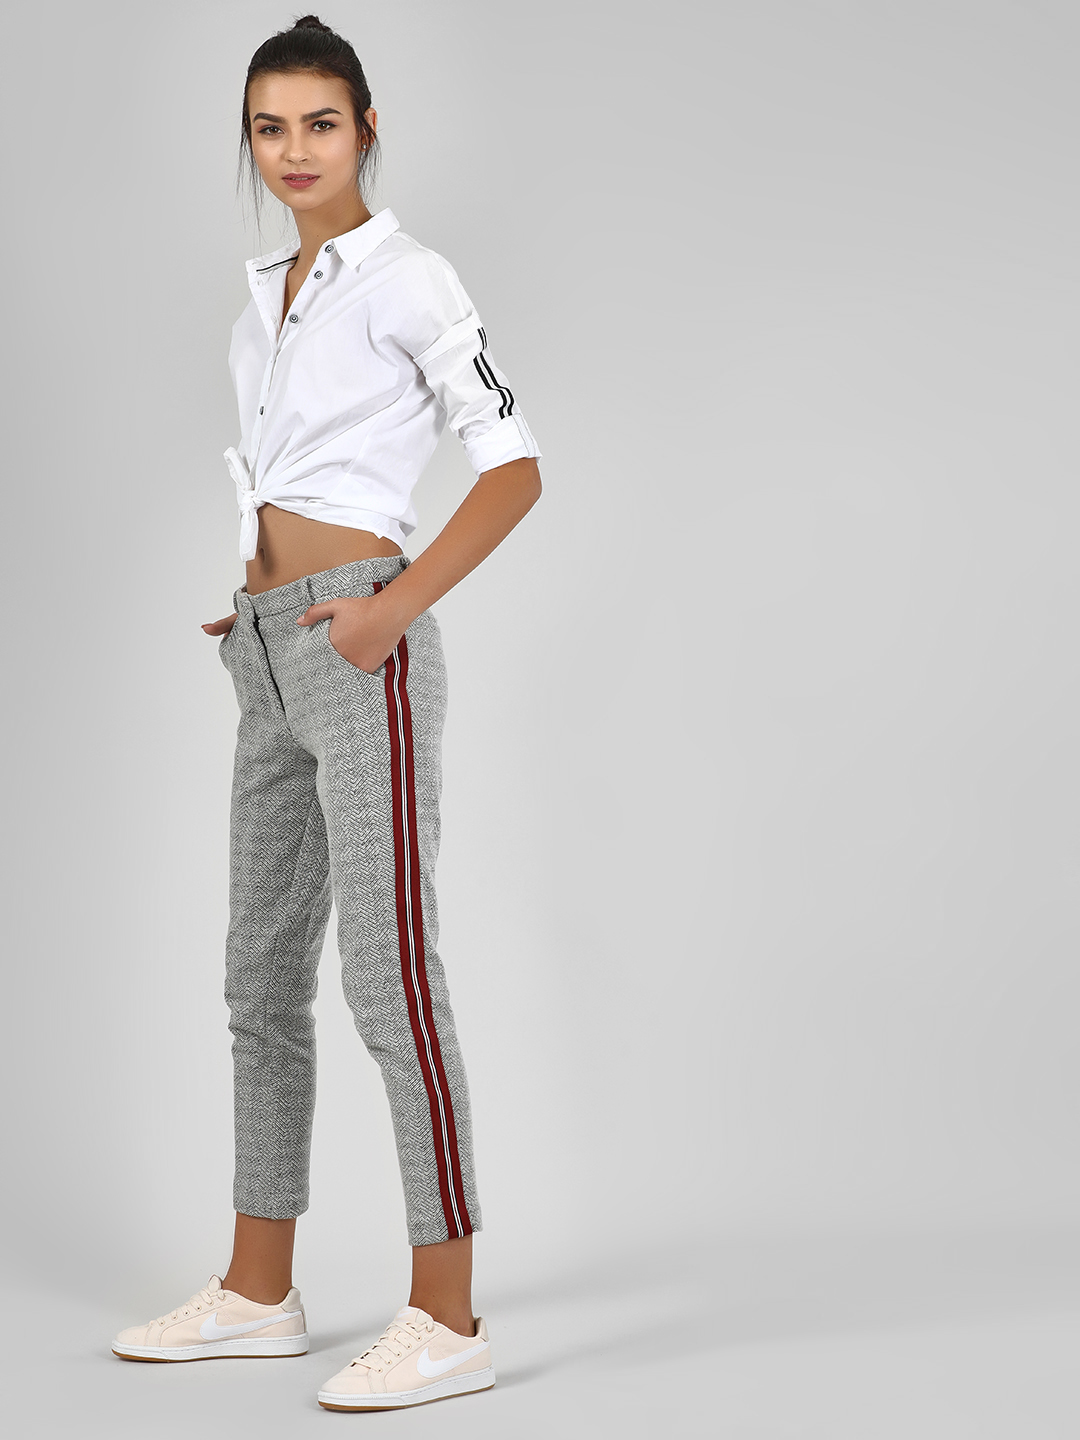 Vero Moda Grey Textured Trouser With Contrast Tape Detail 1